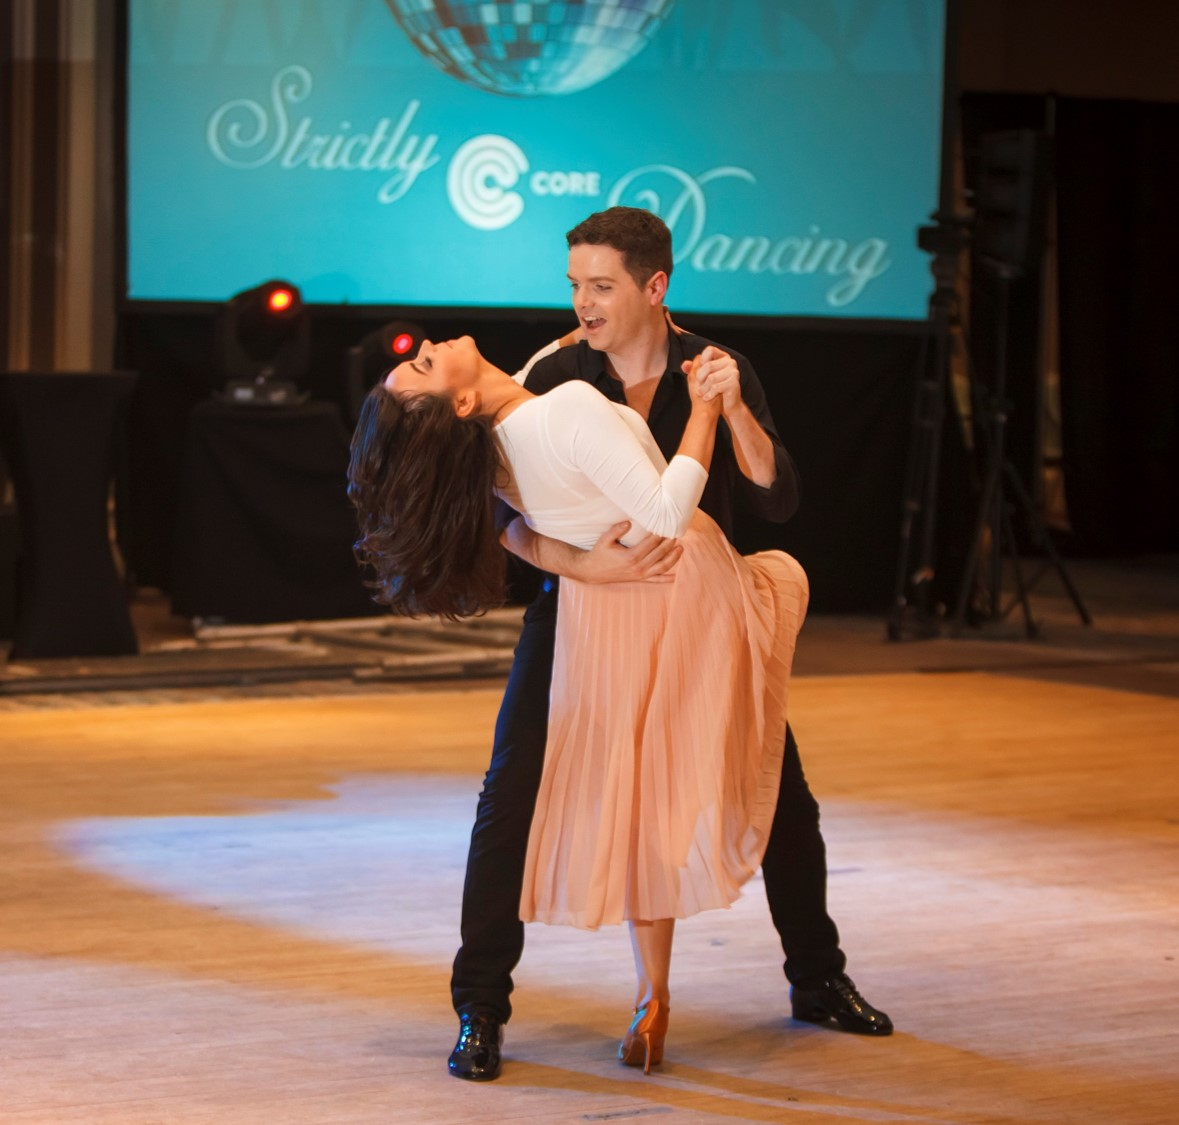 Strictly Core Dancing Winners Melissa Byrne & Colum O'Hara